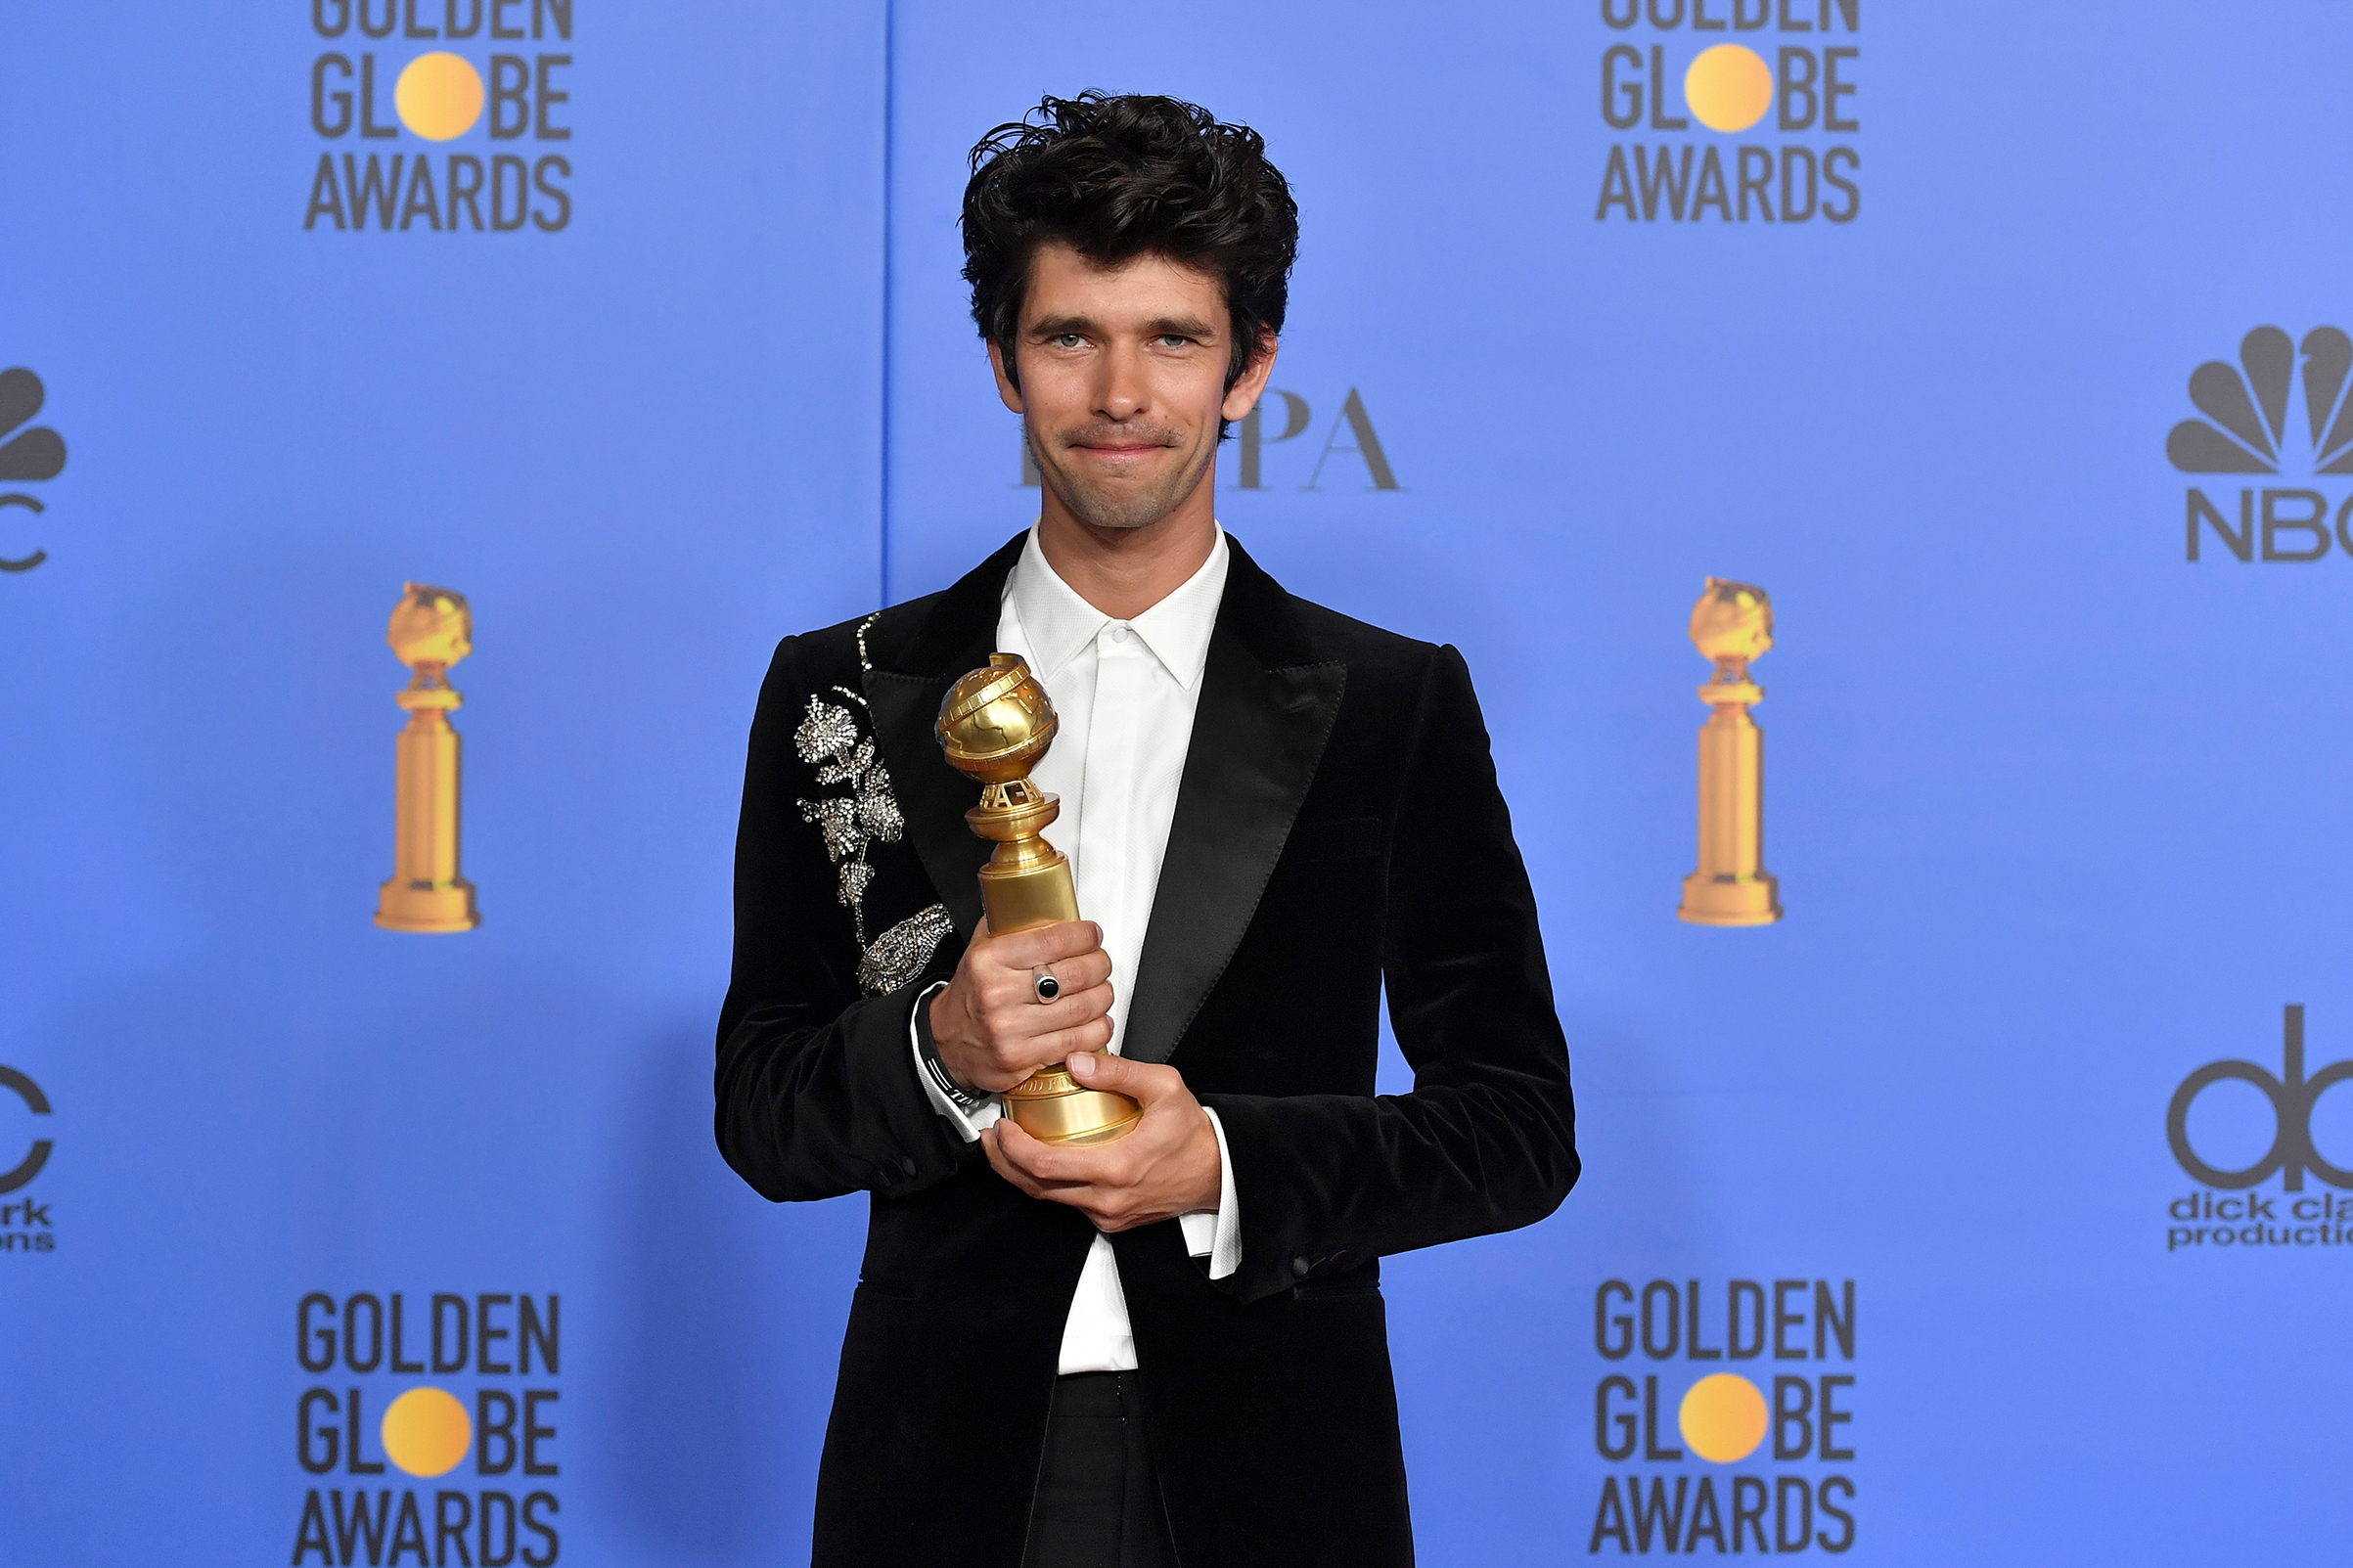 Ben Whishaw, Best Supporting Actor in a Series Limited-Series or TV Movie for 'A Very English Scandal' at the 76th Annual Golden Globe Awards.